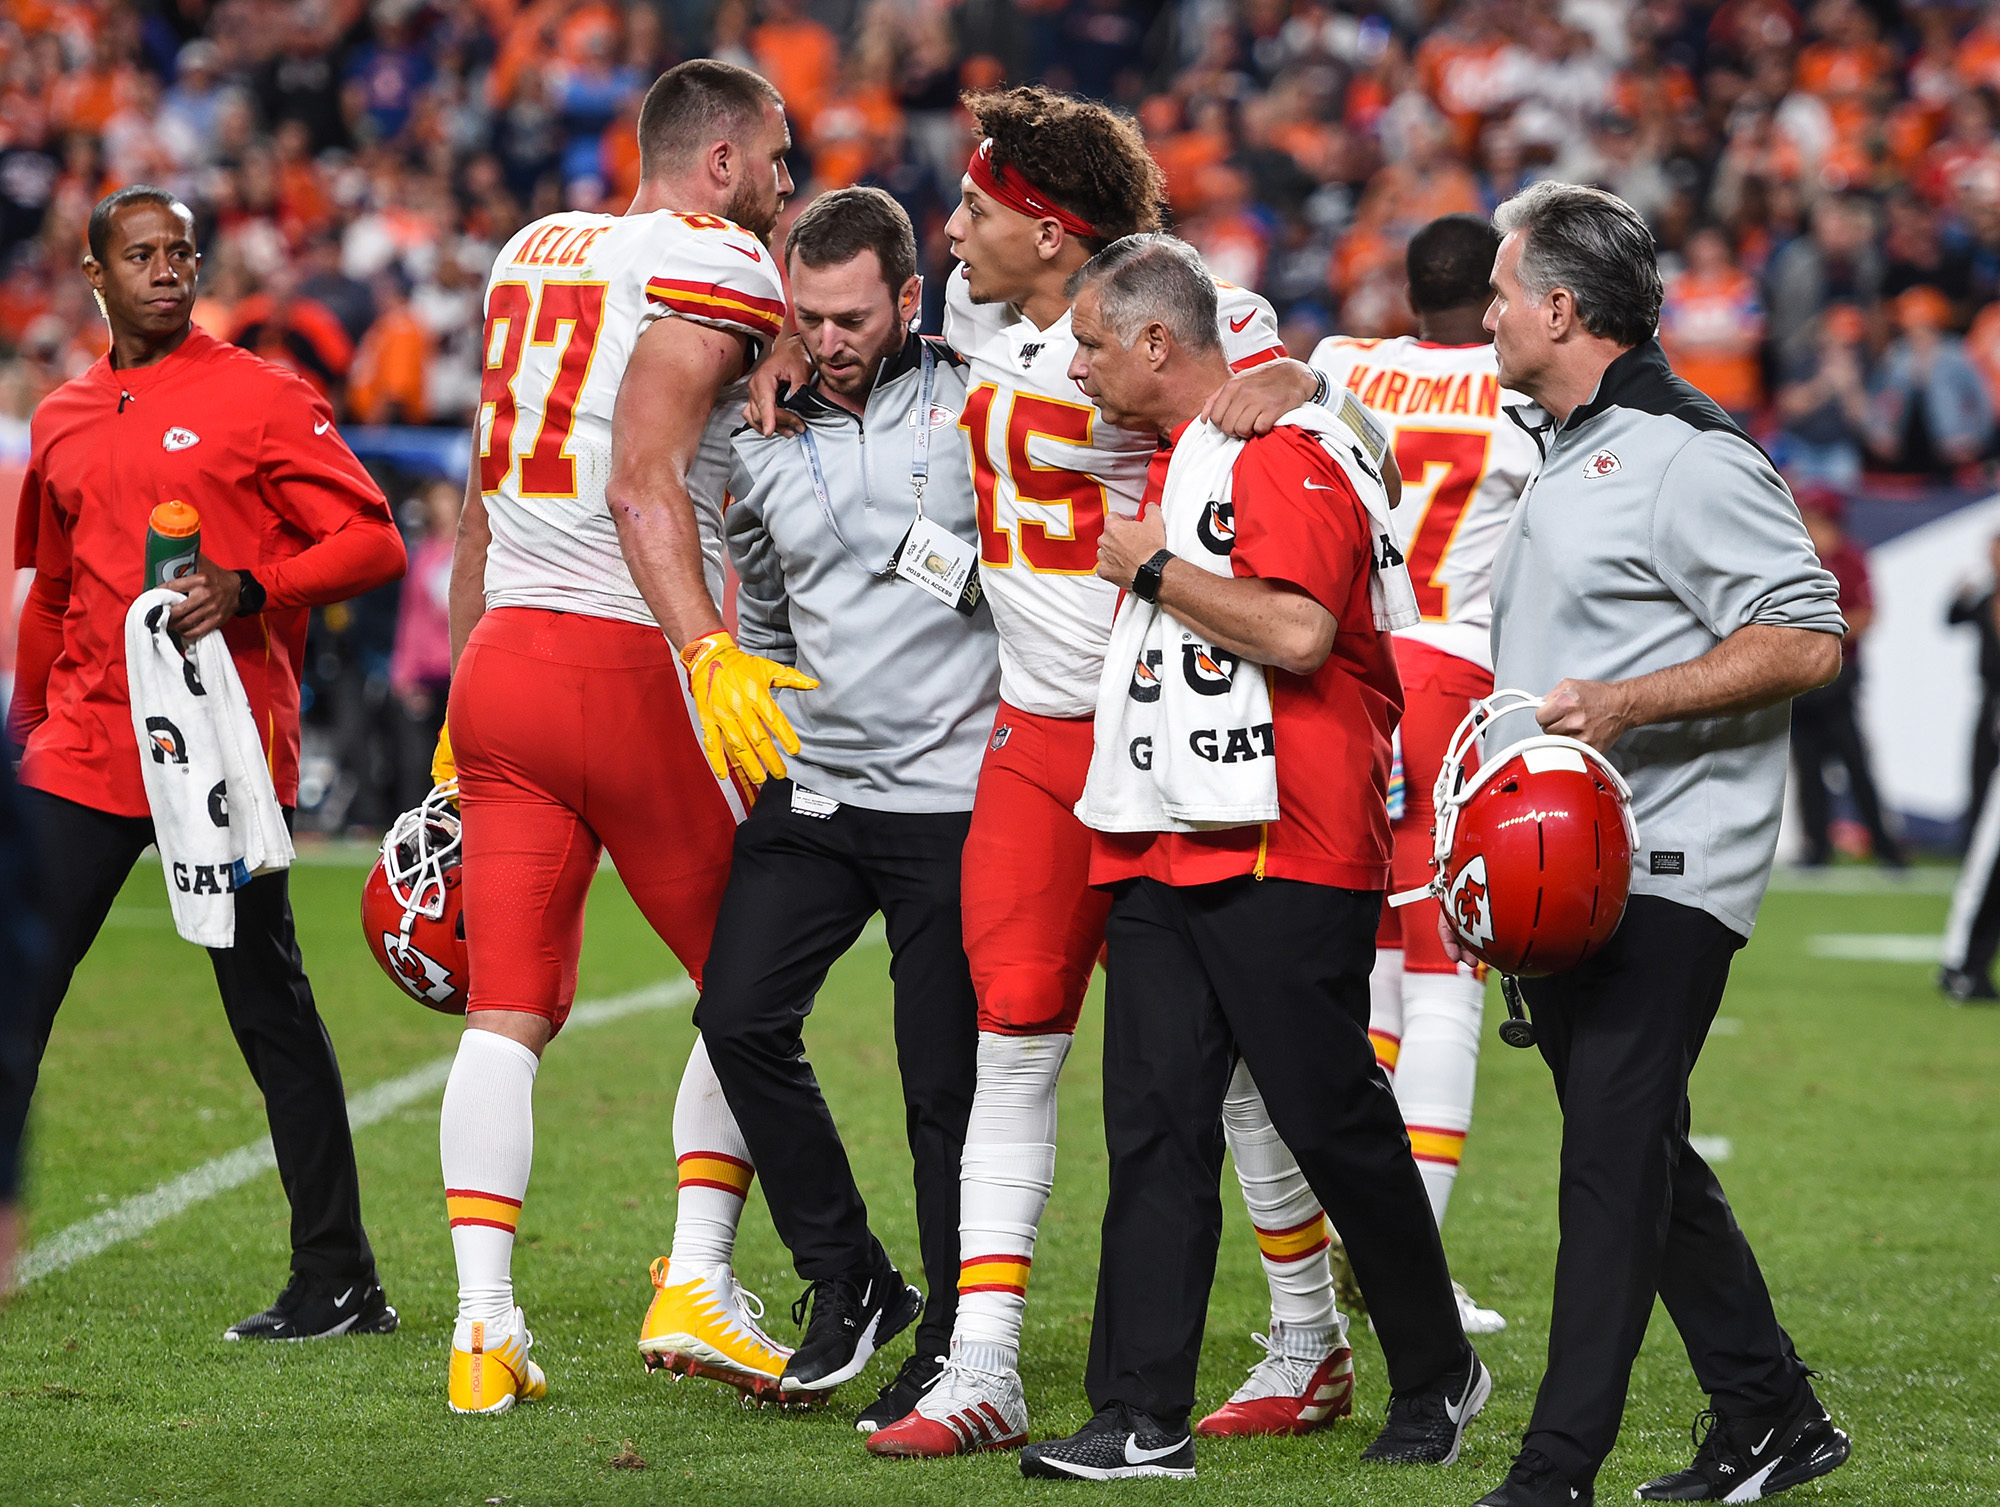 The Chiefs' life without Patrick Mahomes begins now. Here's what that looks like